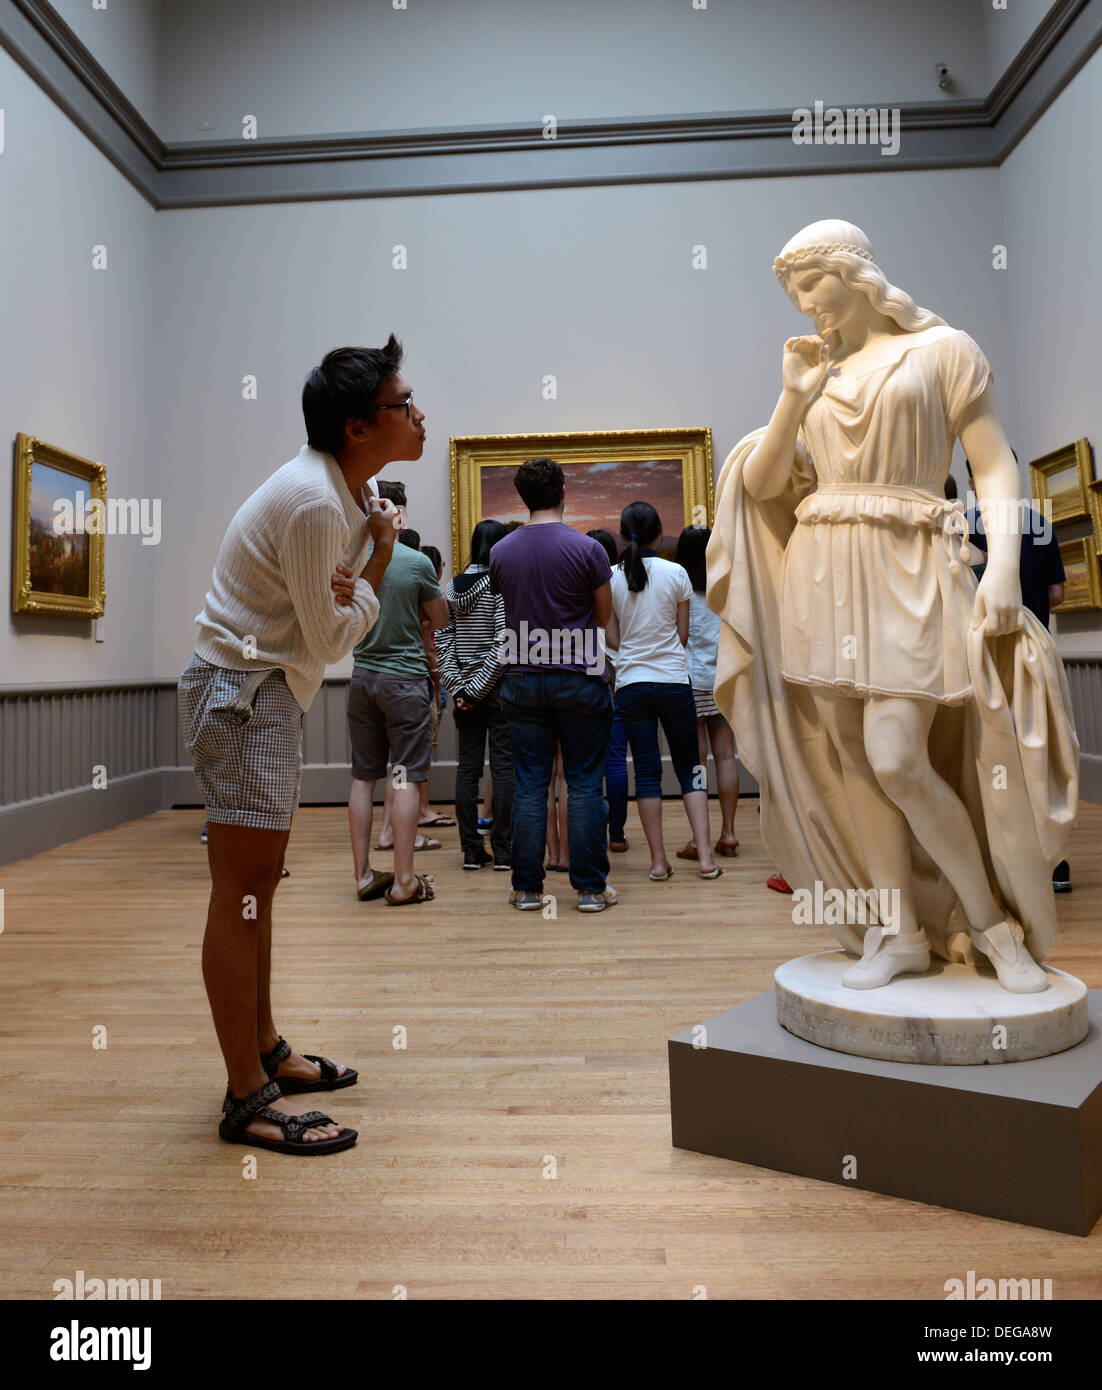 Student of David Nolta's 'Introduction to the History of Art' class in newly renovated Yale University Art Gallery. - Stock Image